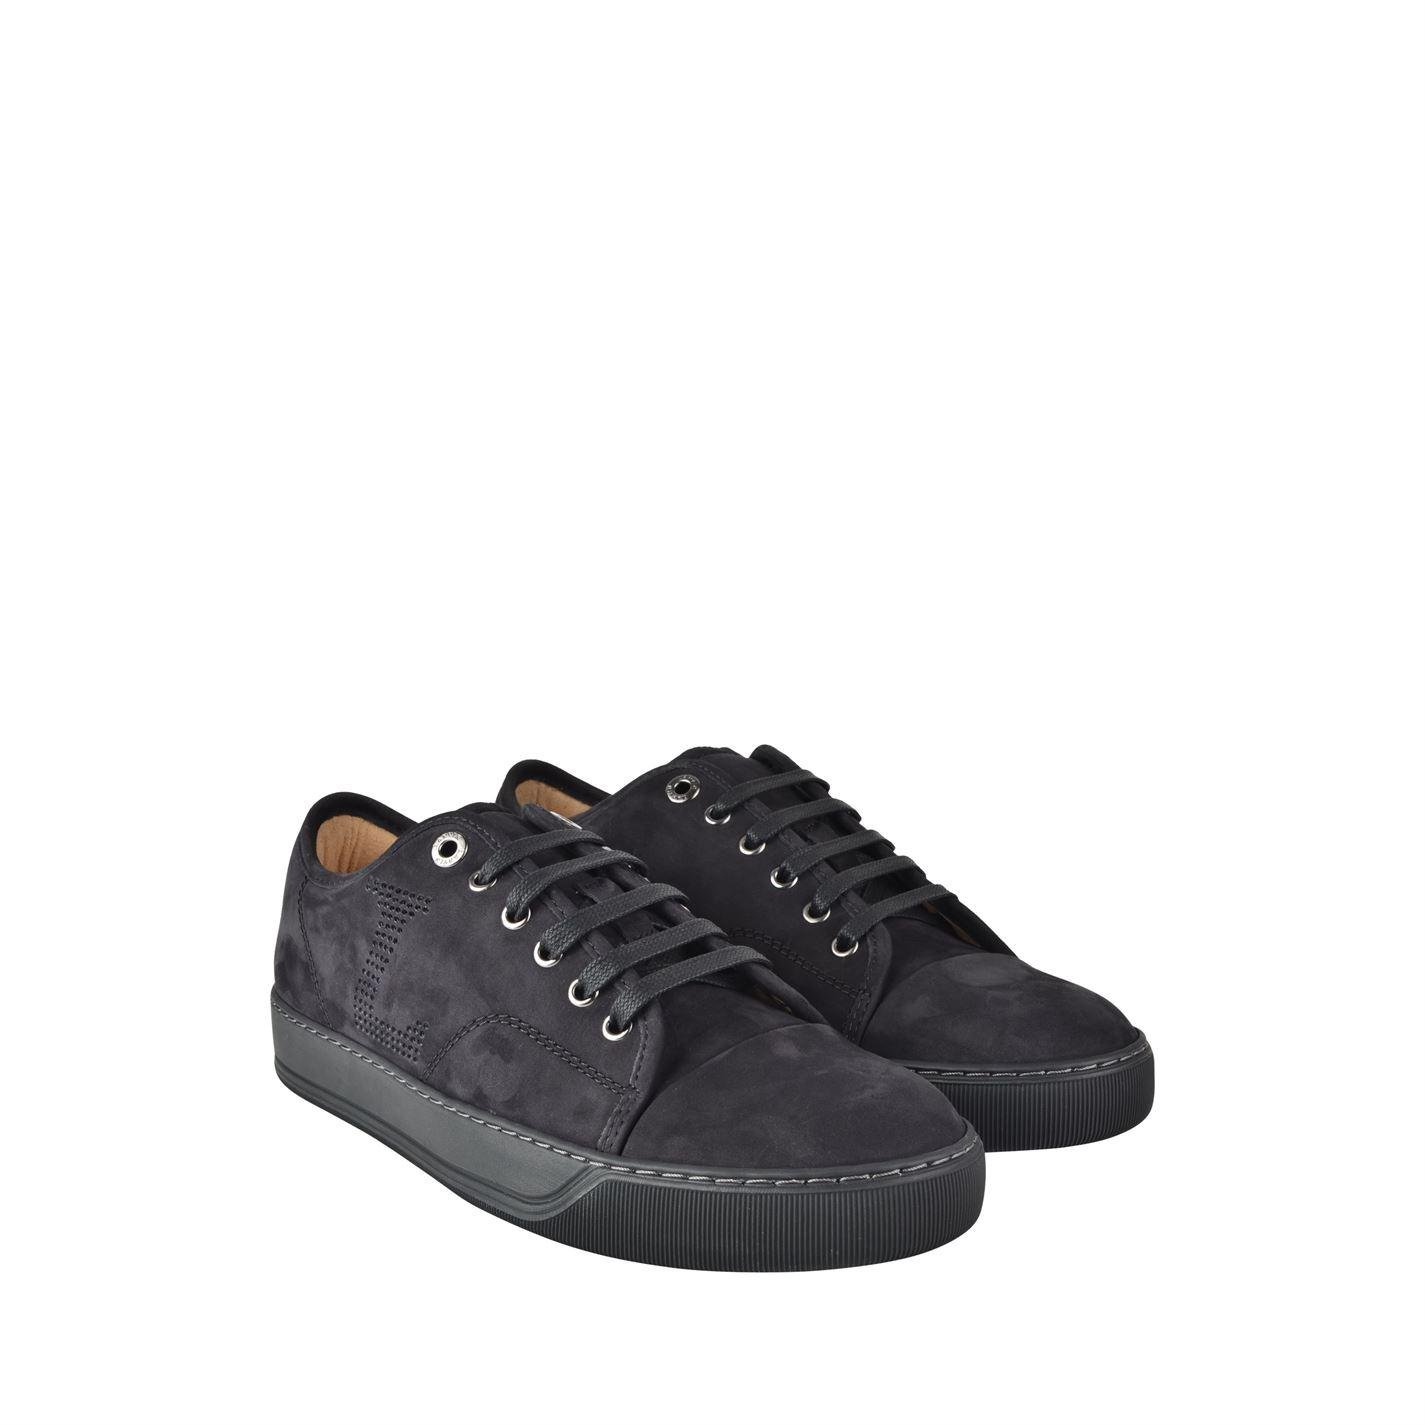 Lanvin Suede Nubuk Low Top Trainers in Black for Men